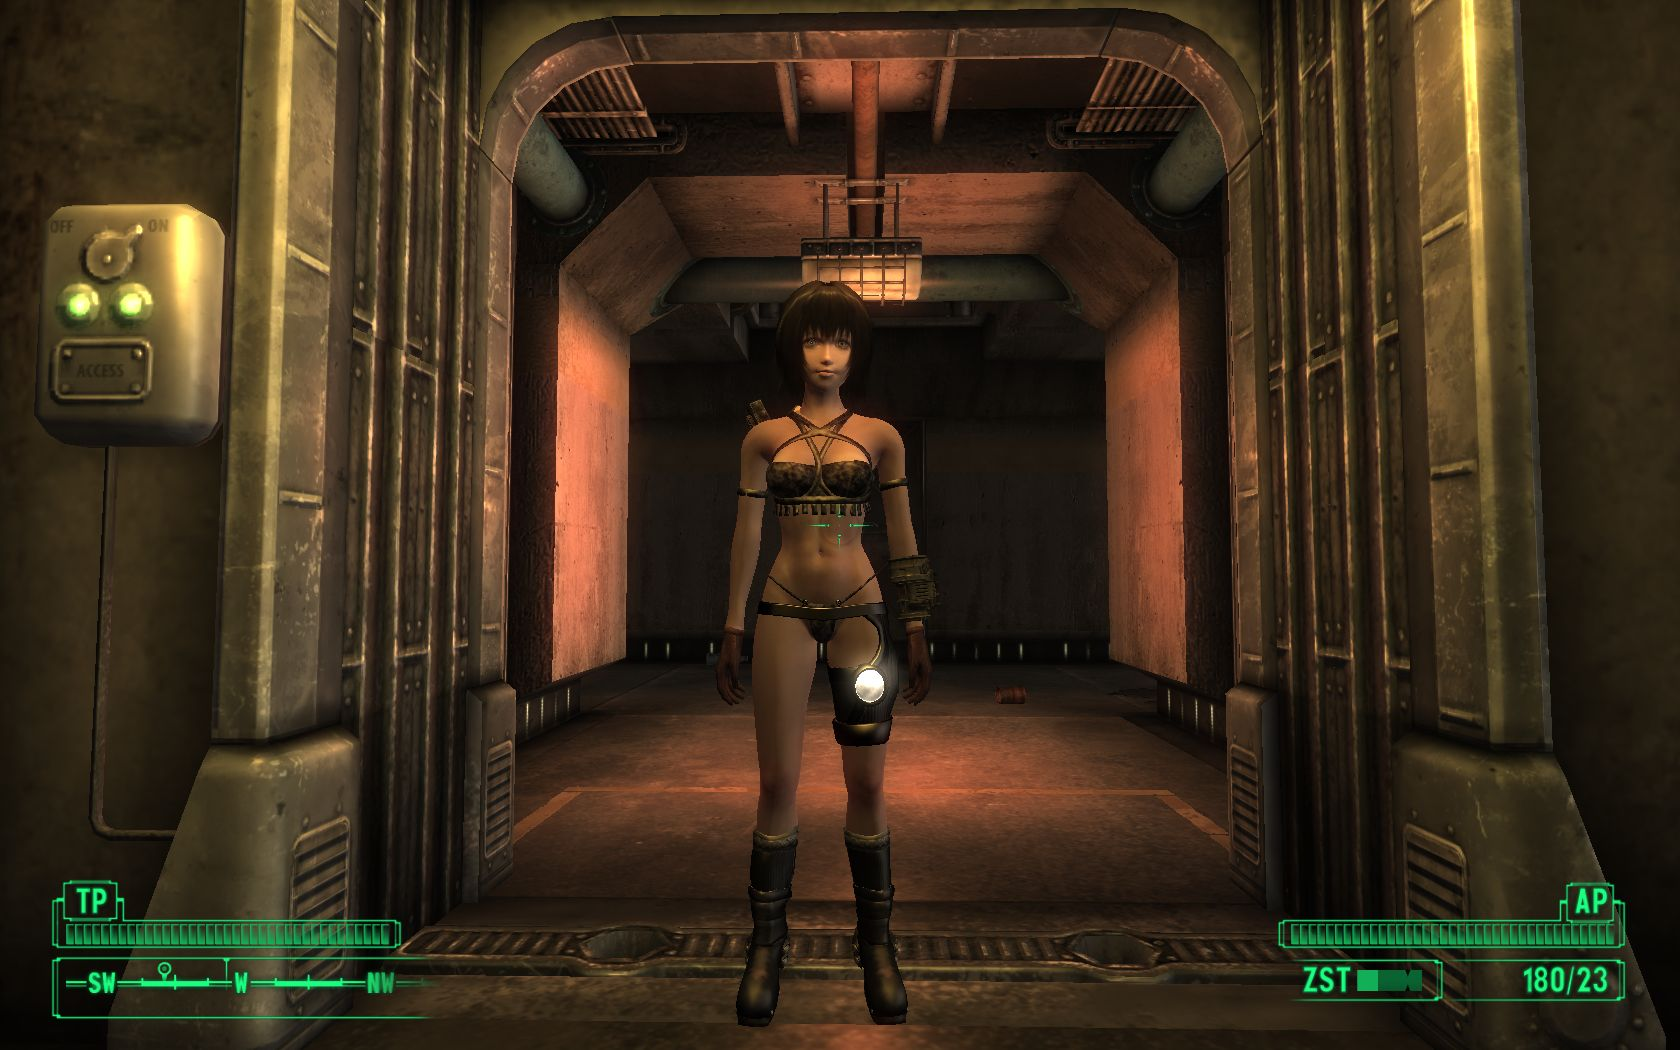 Fallout 3 naked babes mod cartoon images